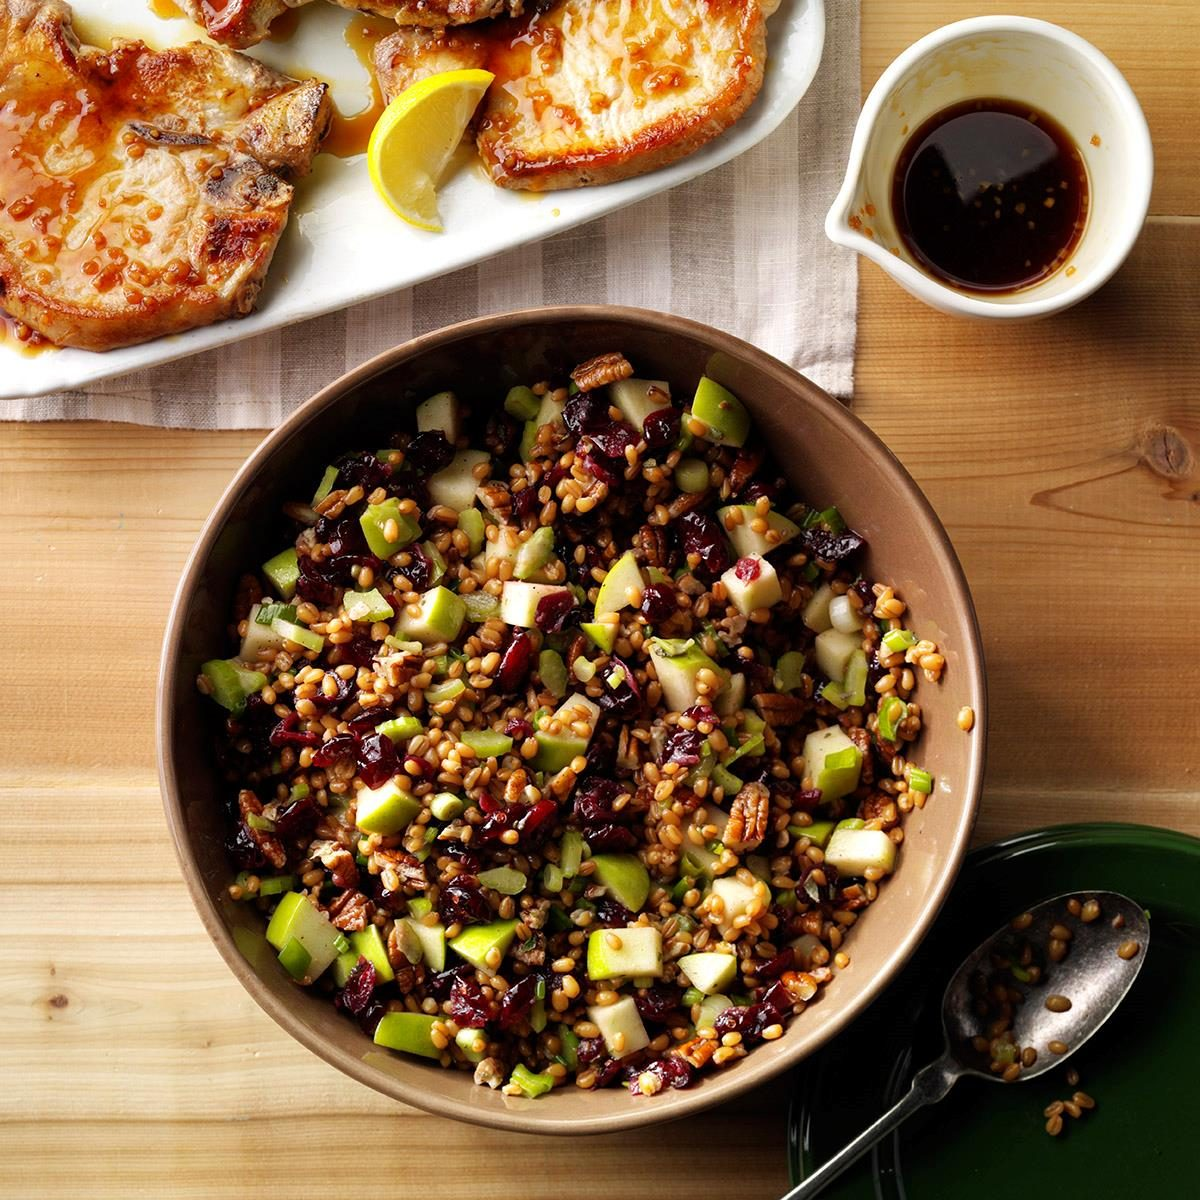 Day 5: Cranberry-Pecan Wheat Berry Salad